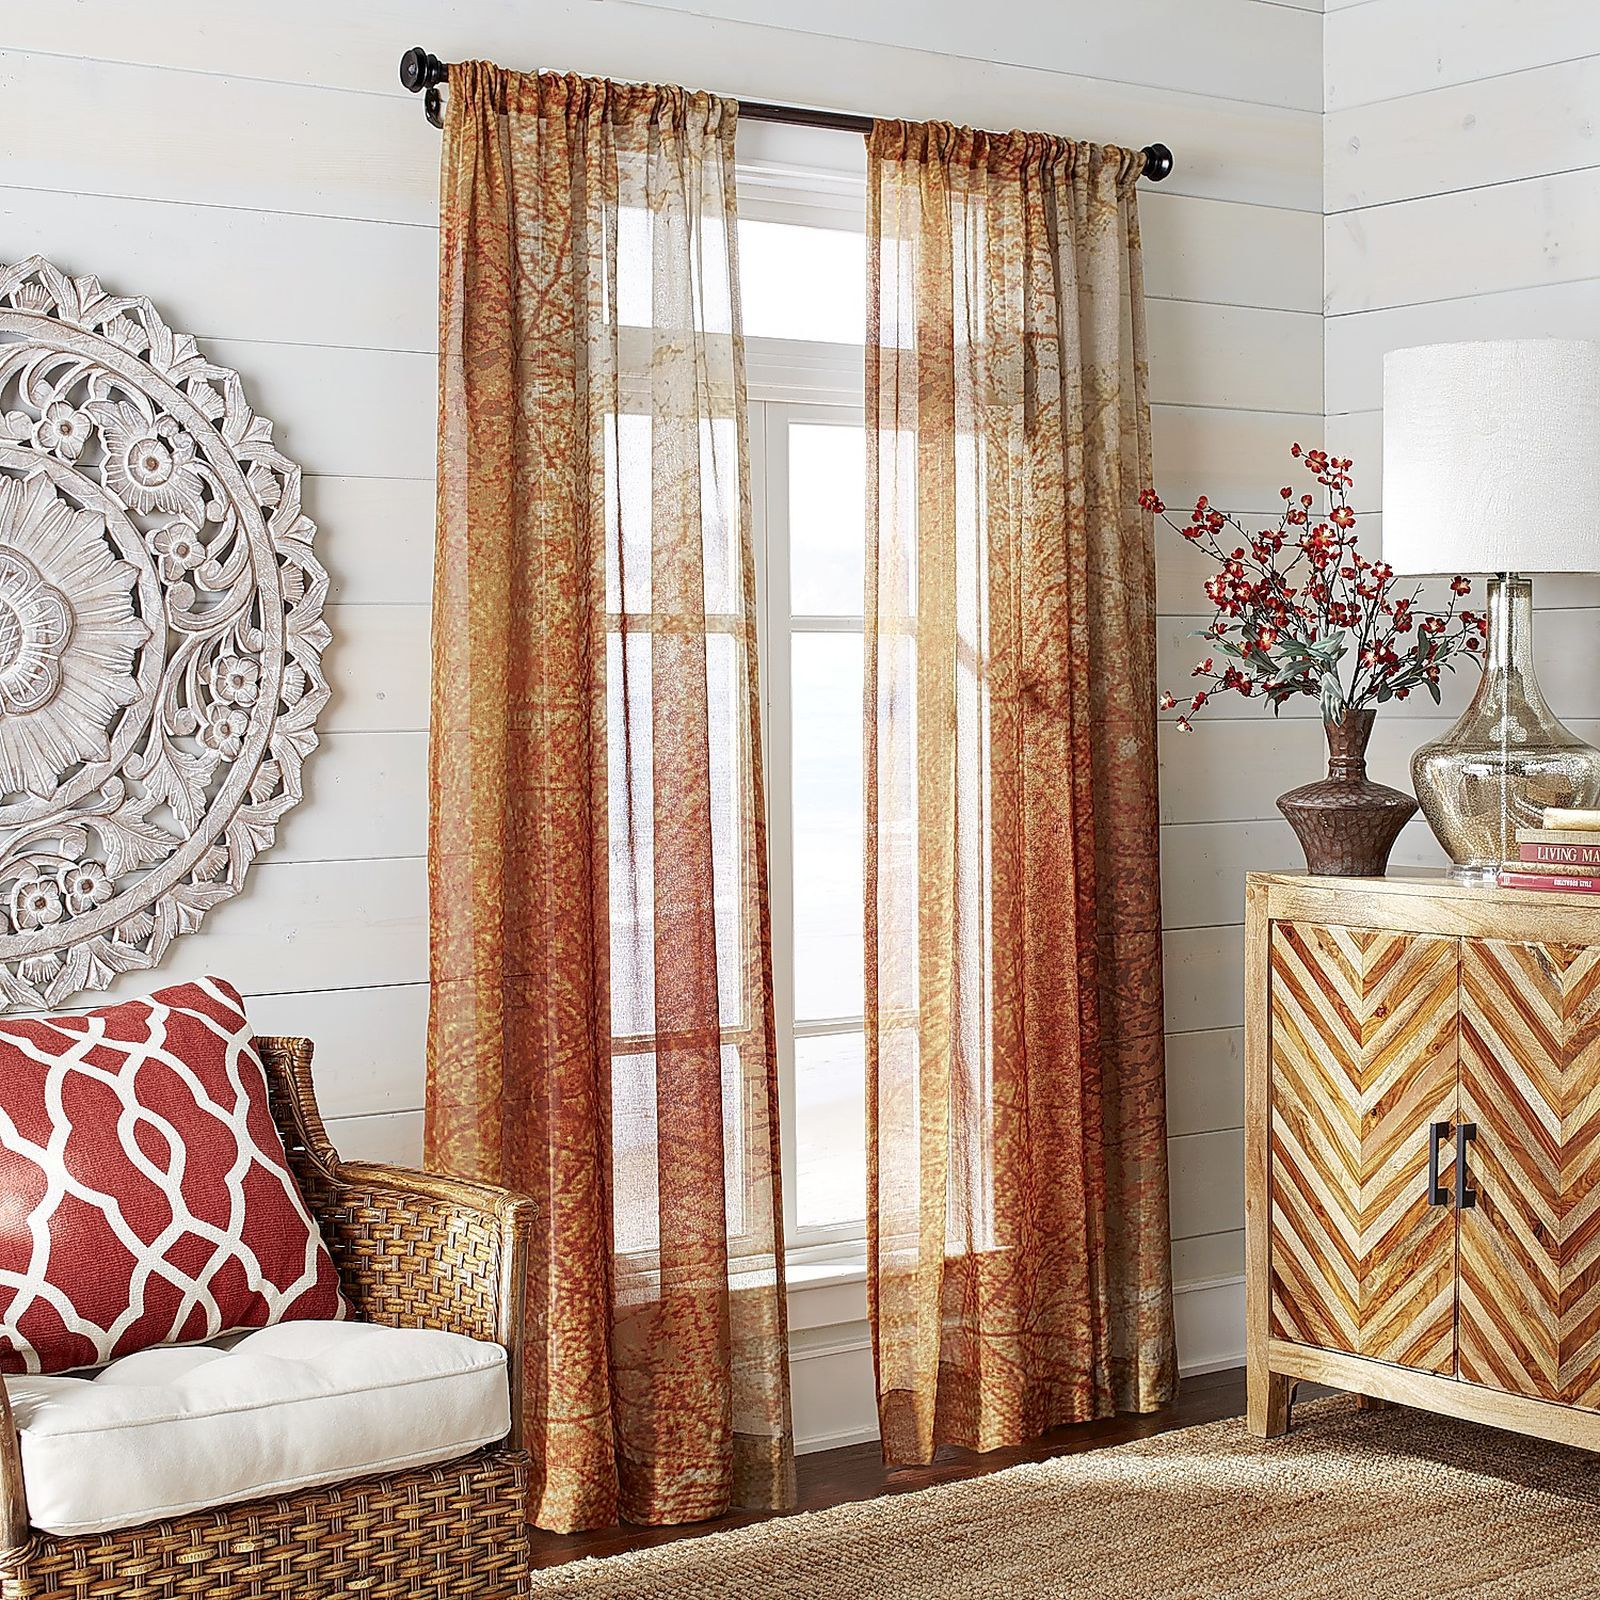 Sheer Curtains For Living Room Autumn Leaves Sheer Curtain Pier 1 Imports Living Room